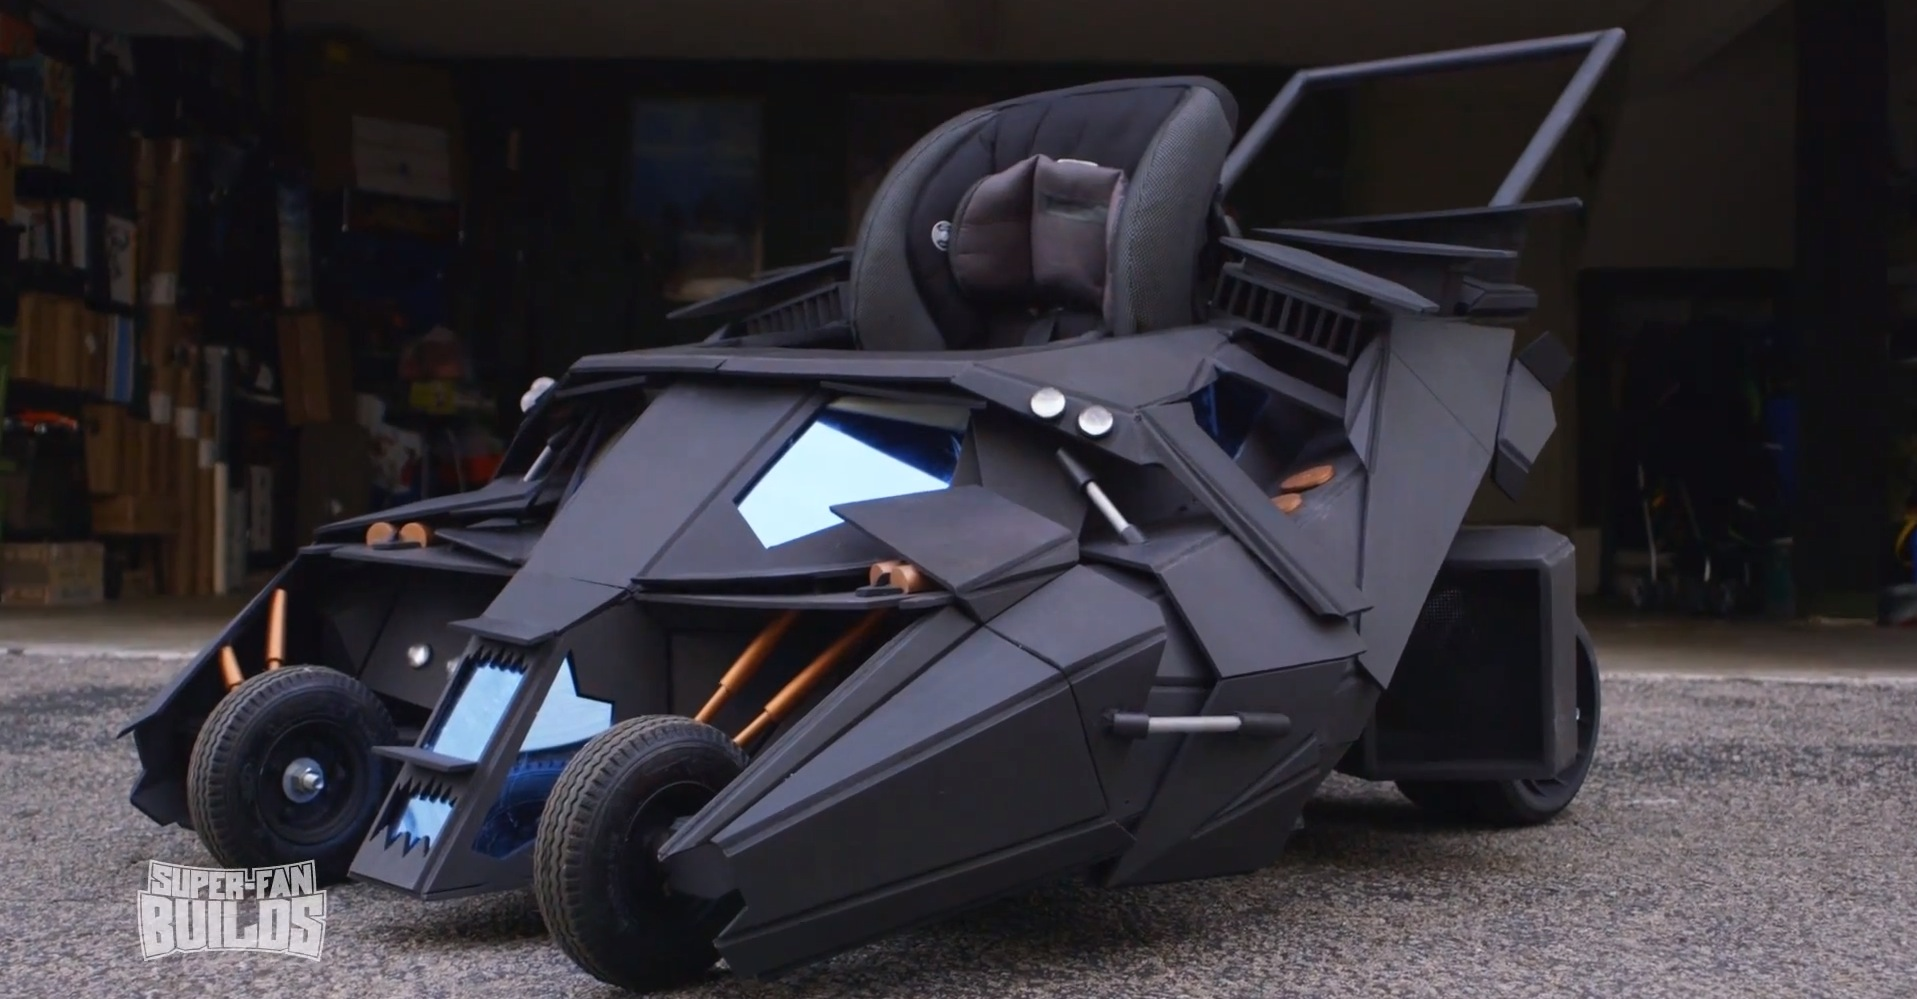 batman car chair white wooden folding chairs for weddings 2 39s tumbler batmobile turned into baby stroller